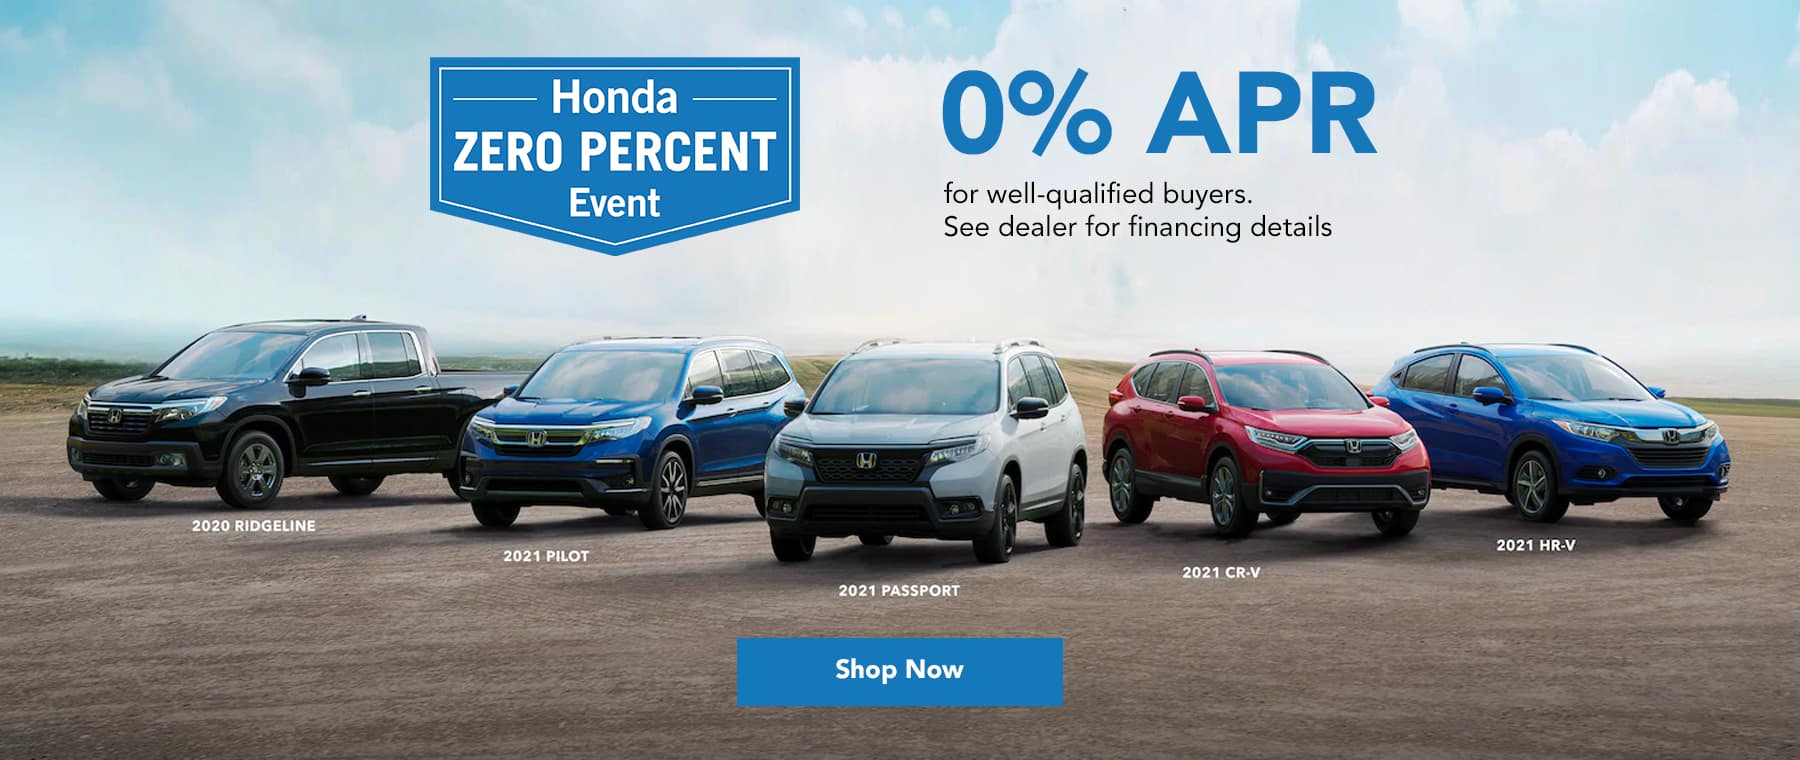 Honda zero percent event: 0% APR for well-qualified buyers